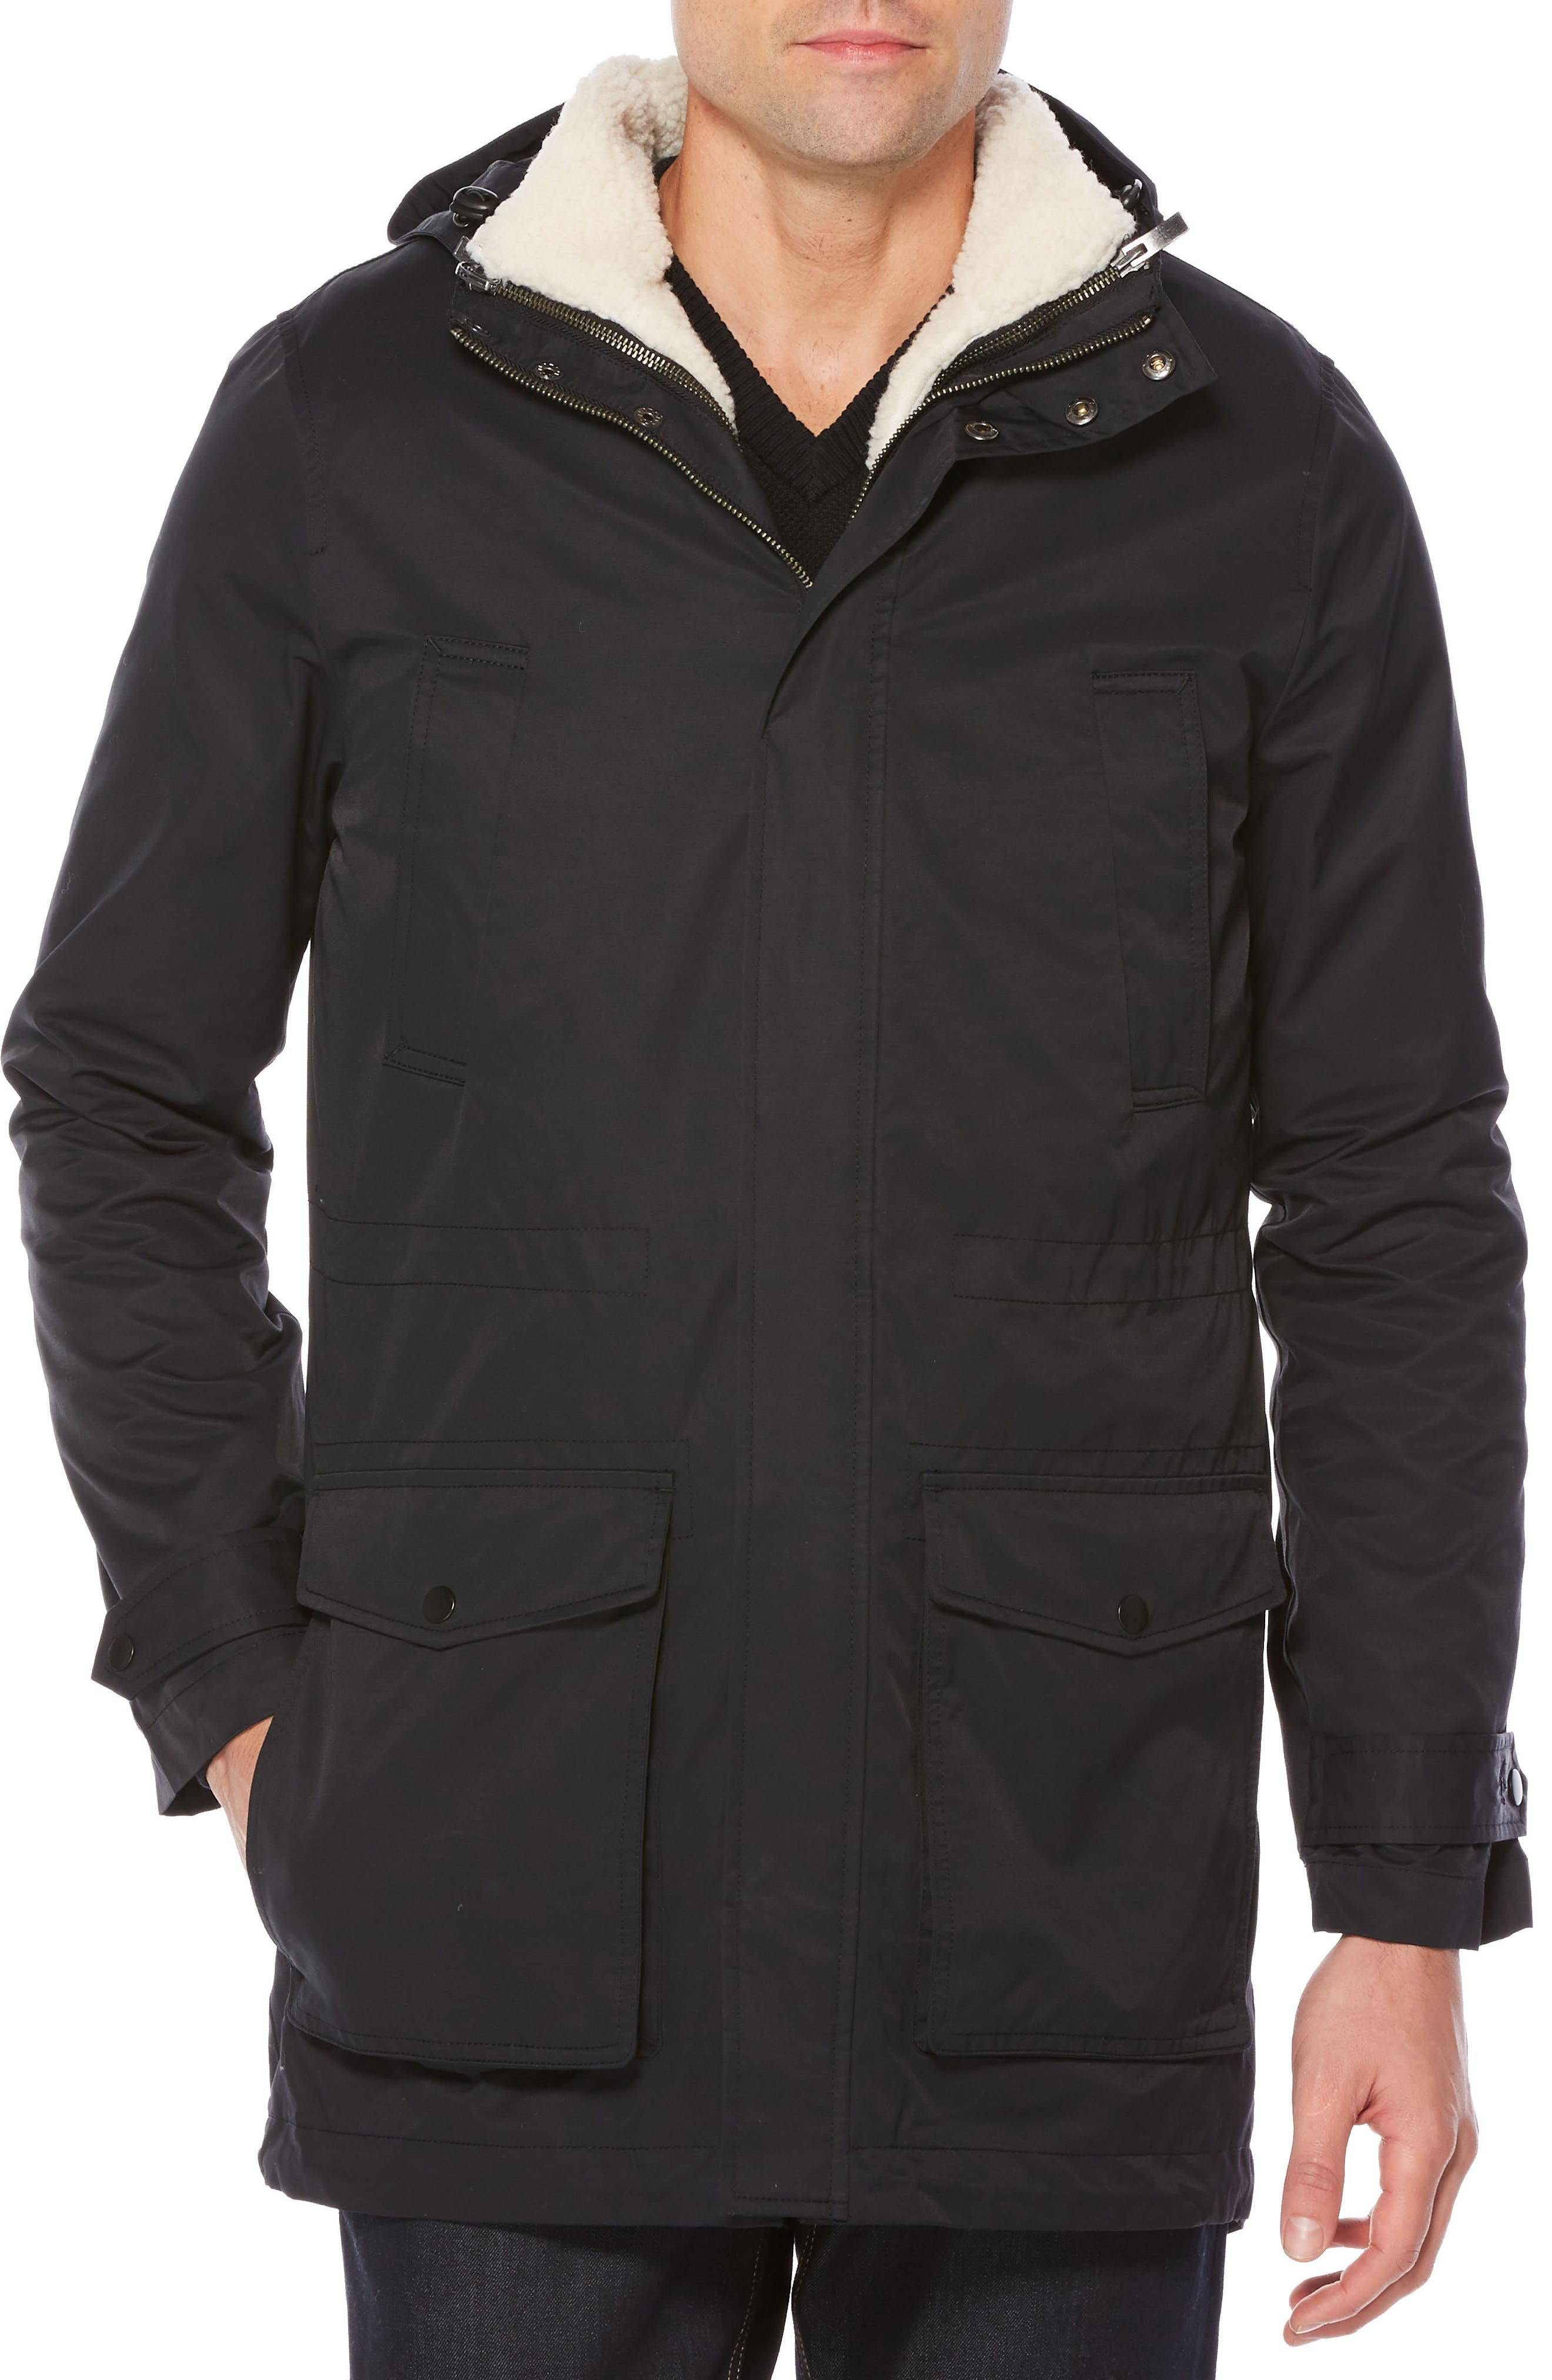 4-in-1 Water Resistant Jacket,                             Main thumbnail 1, color,